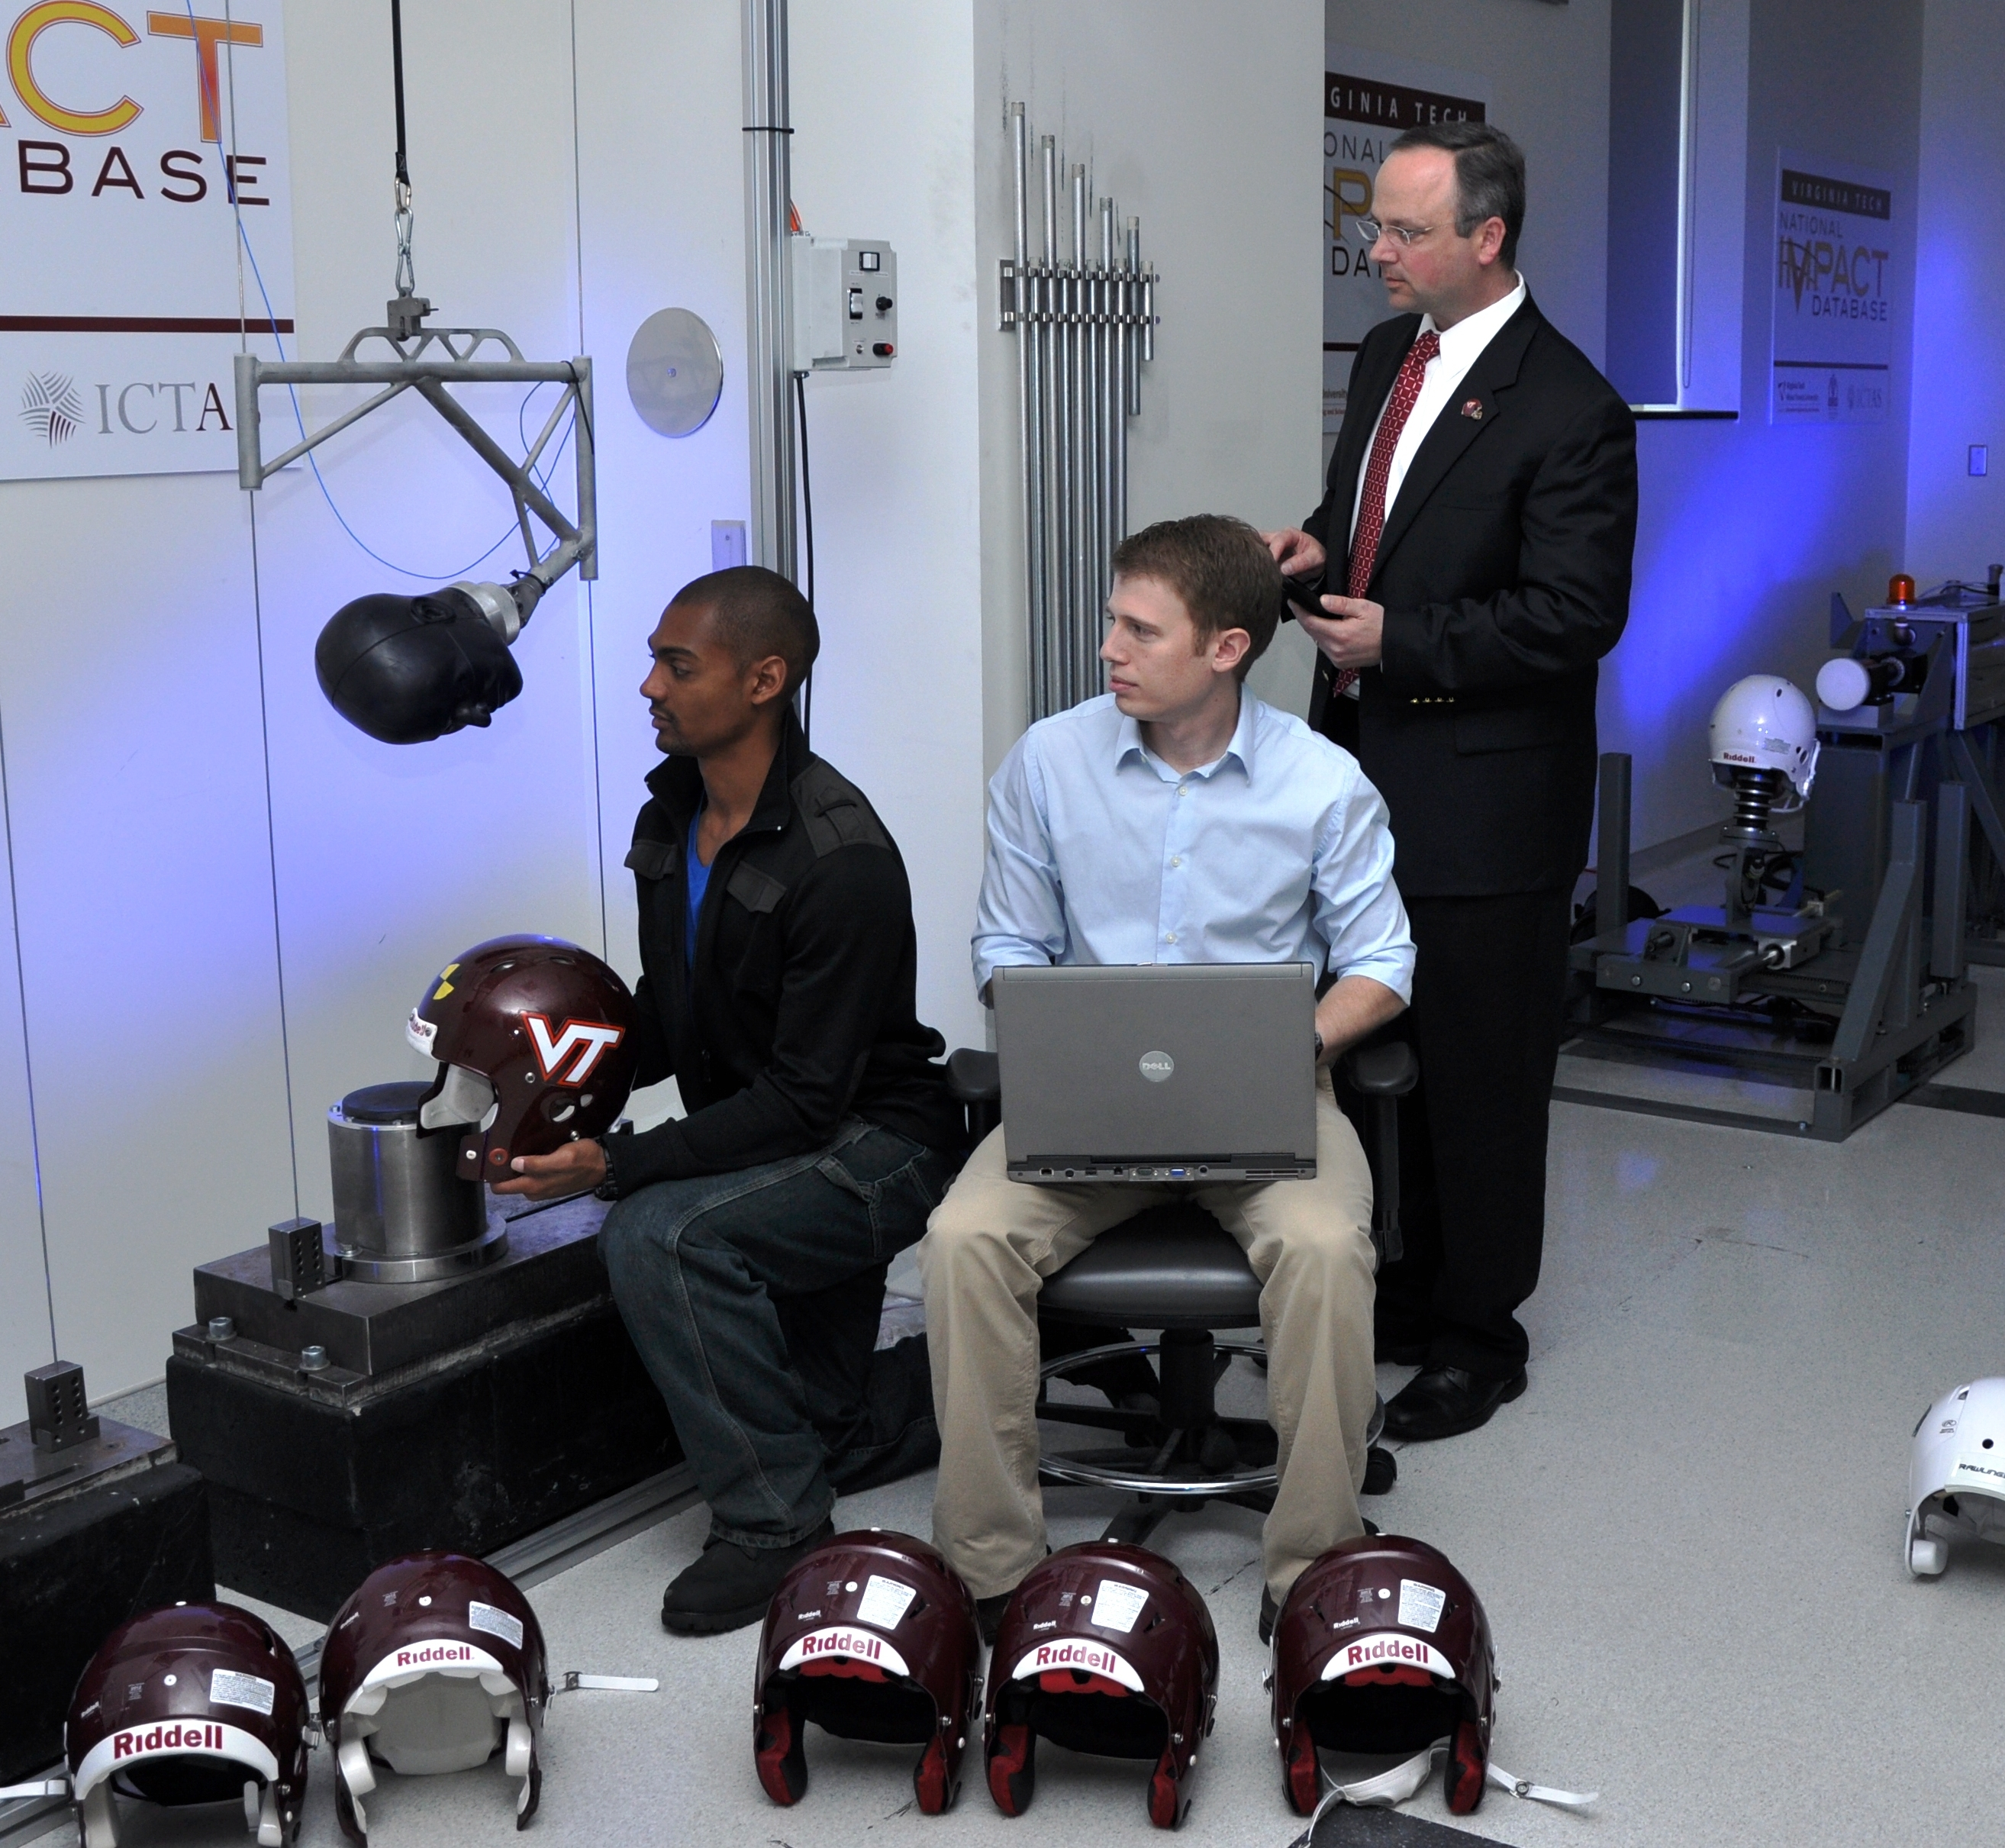 Daniel, Rowson, and Duma test helmets